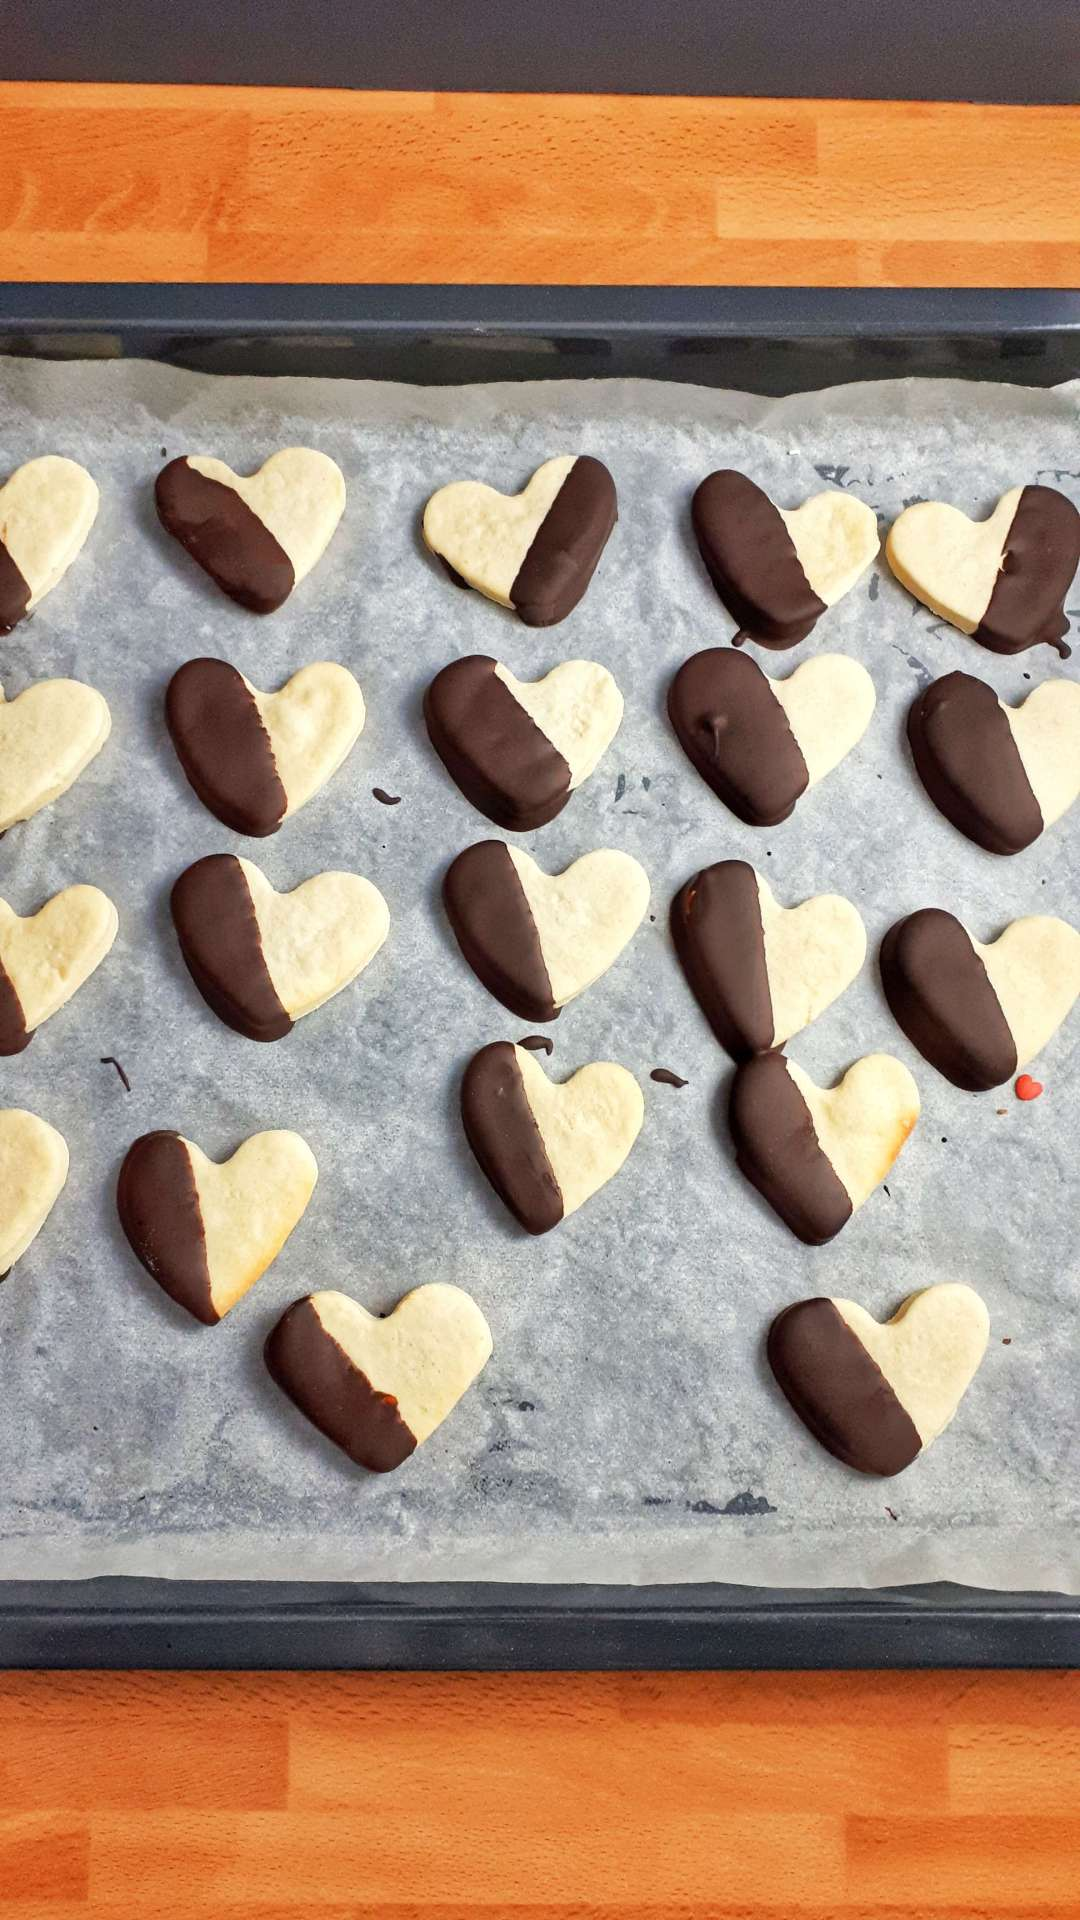 This is the best sugar cookie recipe- easy to make, cookies keep their shape when baked, soft and flavorful, perfect for decorating and for Valentine's Day!